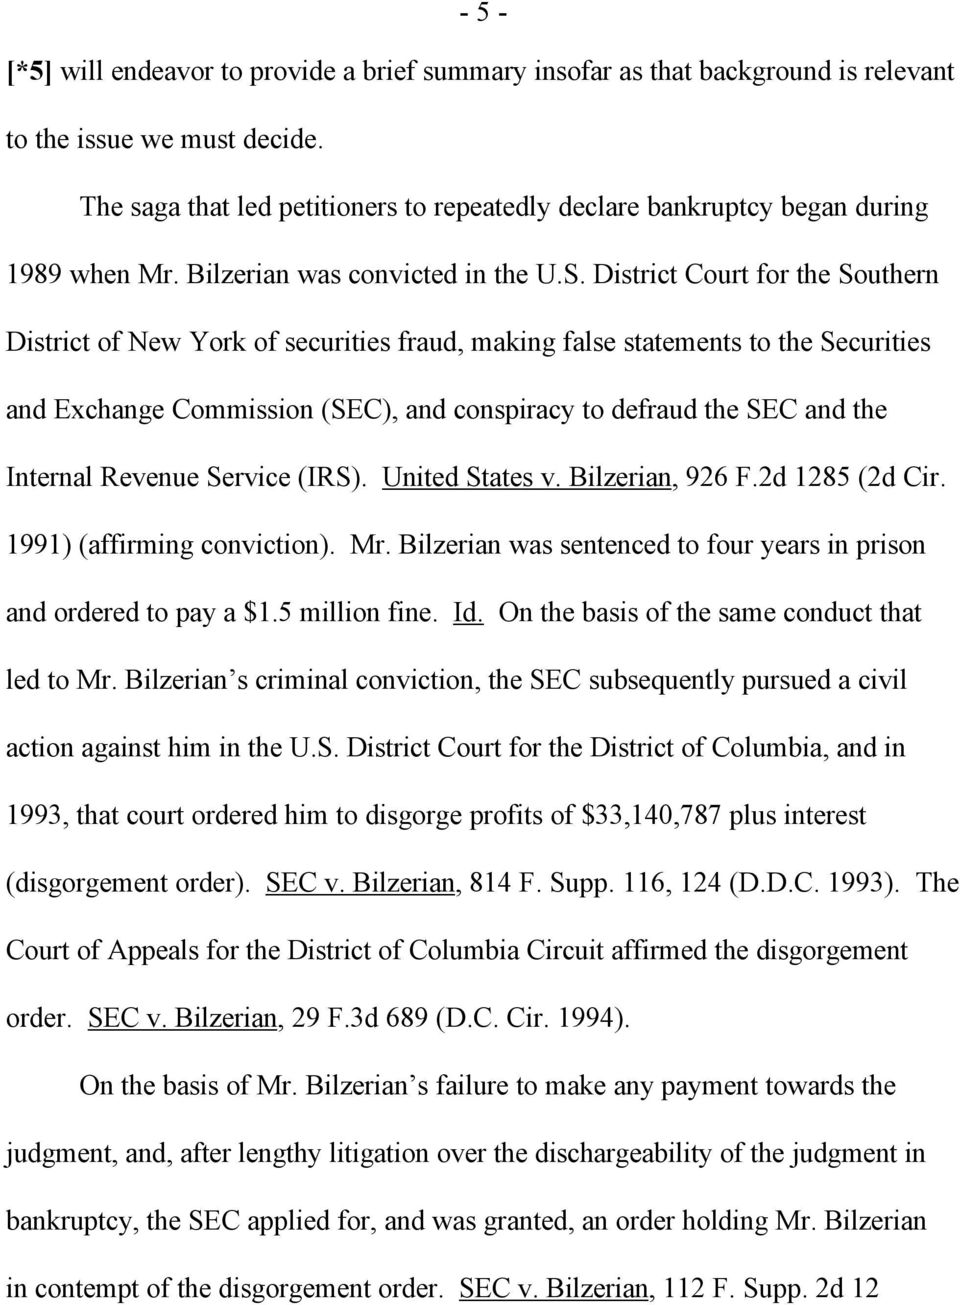 District Court for the Southern District of New York of securities fraud, making false statements to the Securities and Exchange Commission (SEC), and conspiracy to defraud the SEC and the Internal